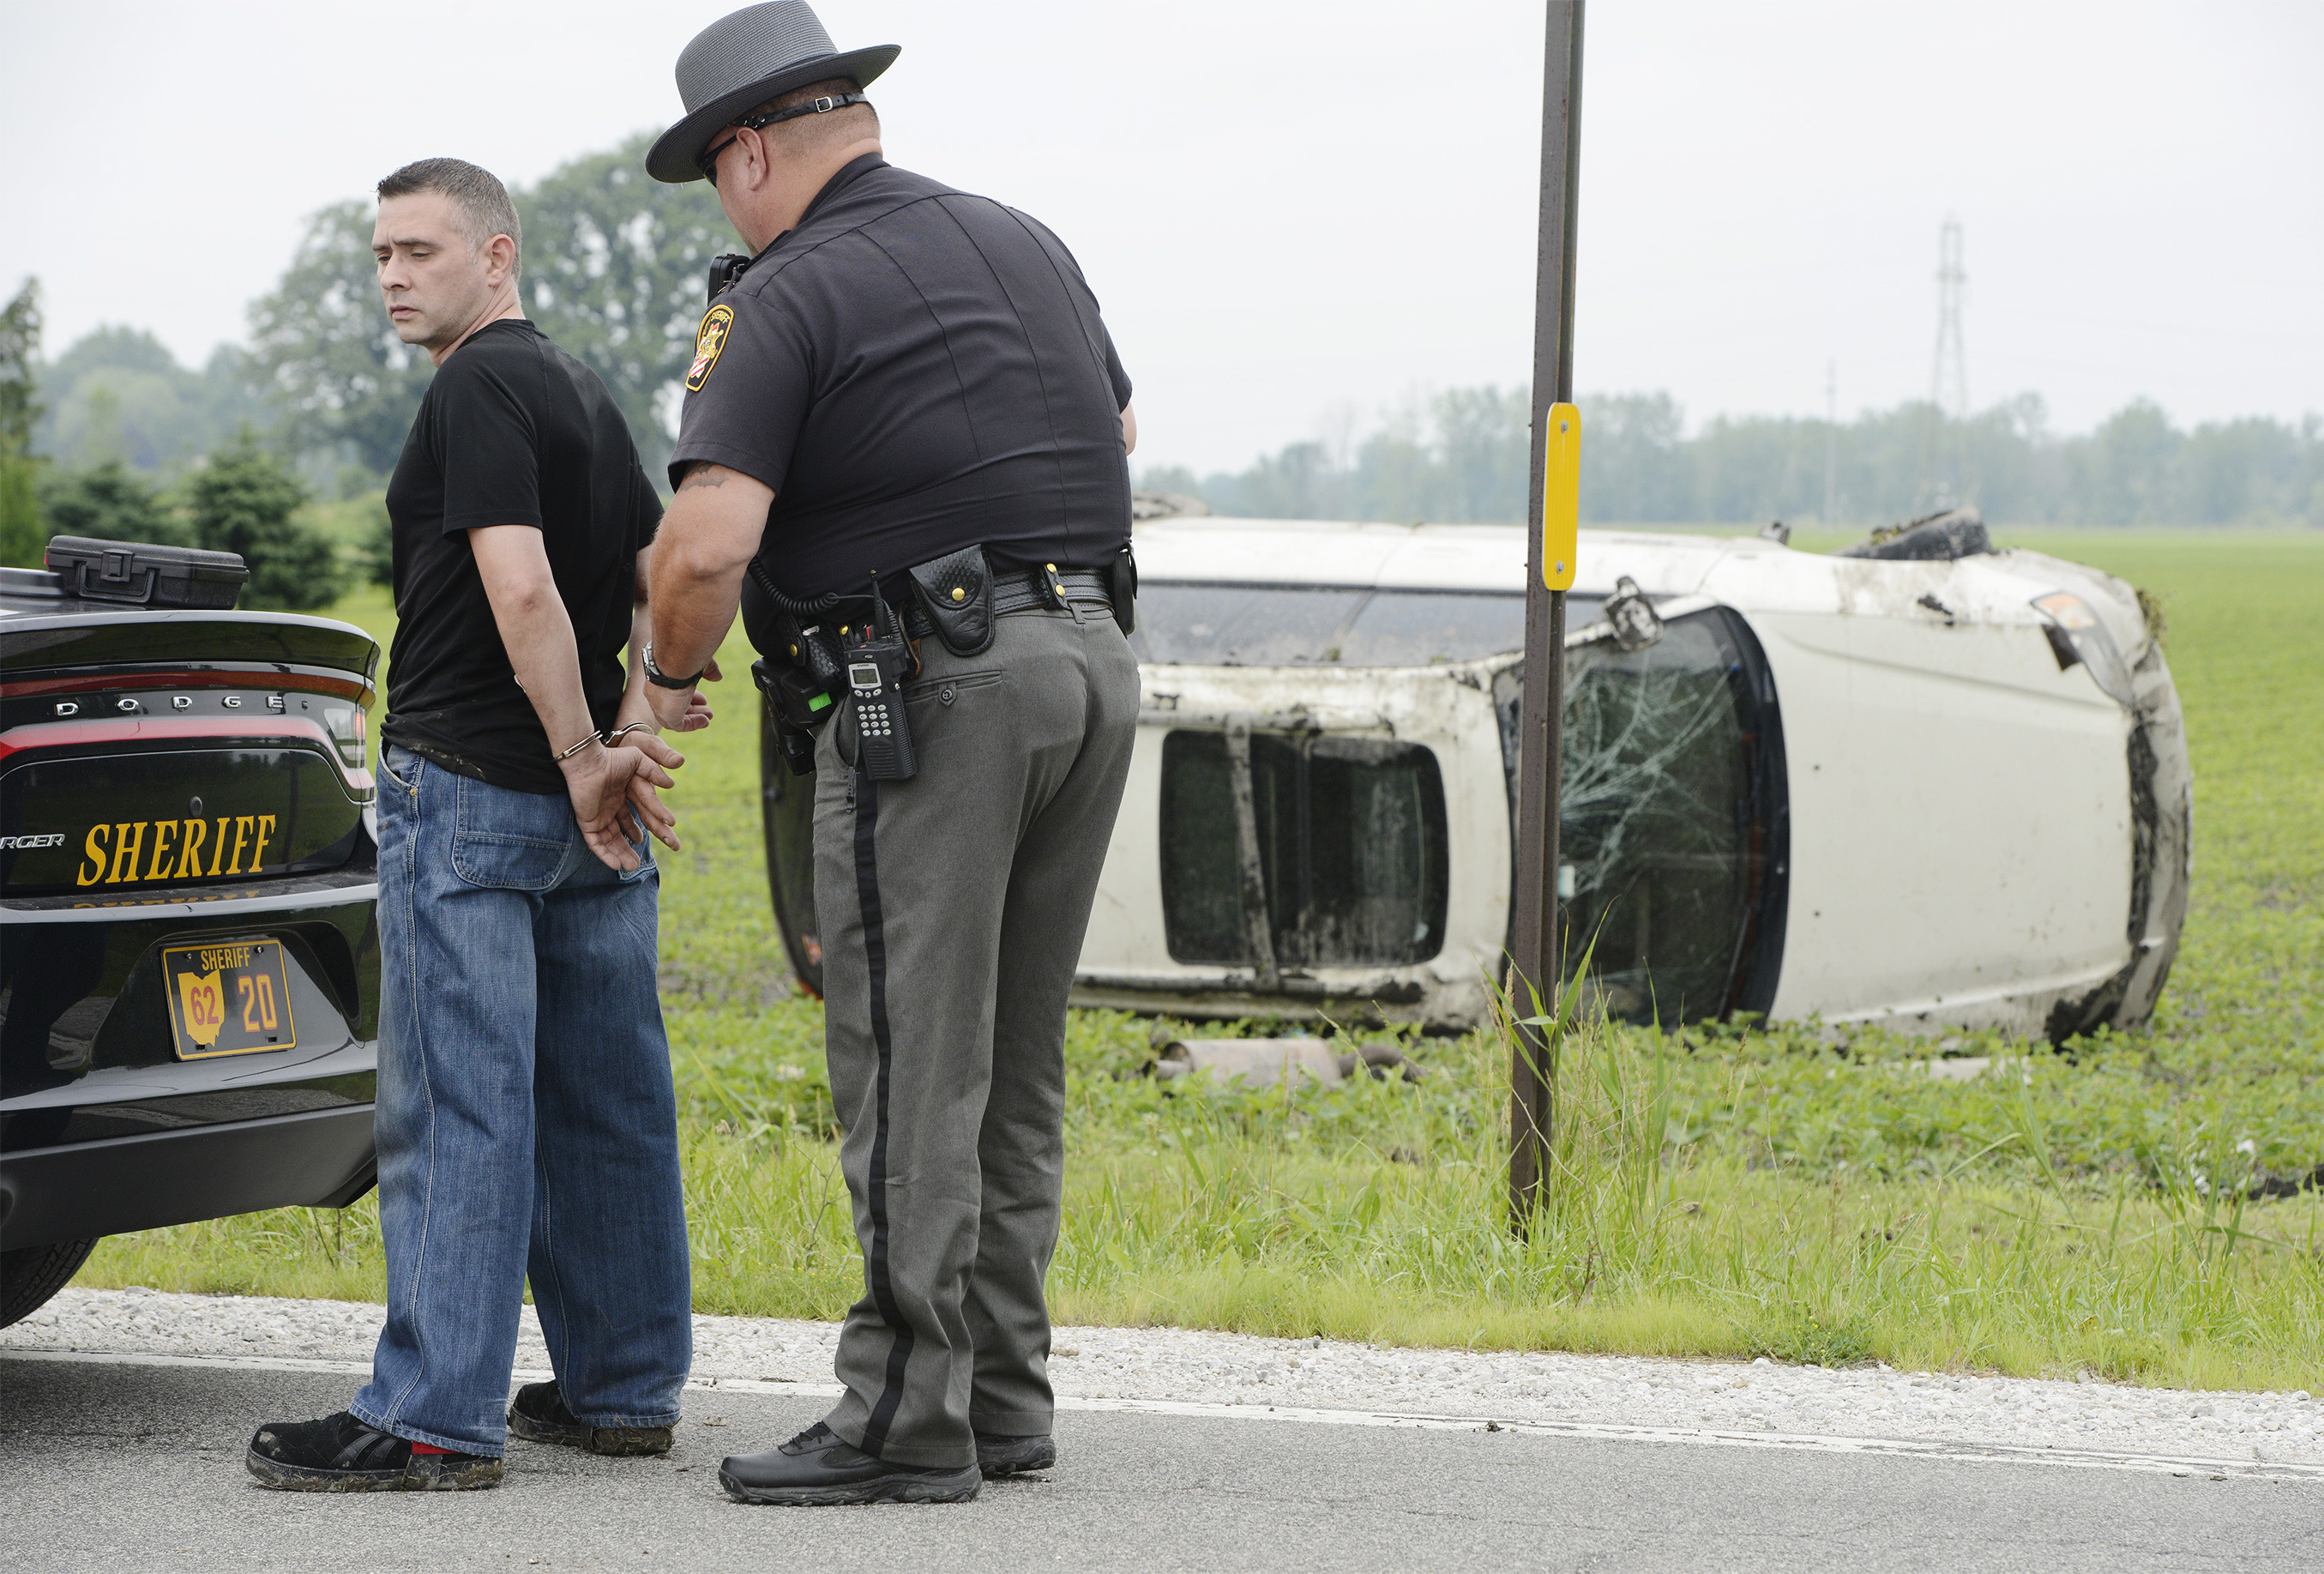 Sgt. Kent Davis, of the Ottawa County Sheriff's Office, arrests William Mitchell after a single-vehicle crash. Mitchell reportedly turned onto County Road 17 from Ohio 53, drove off the road and rolled his car several times in a field.